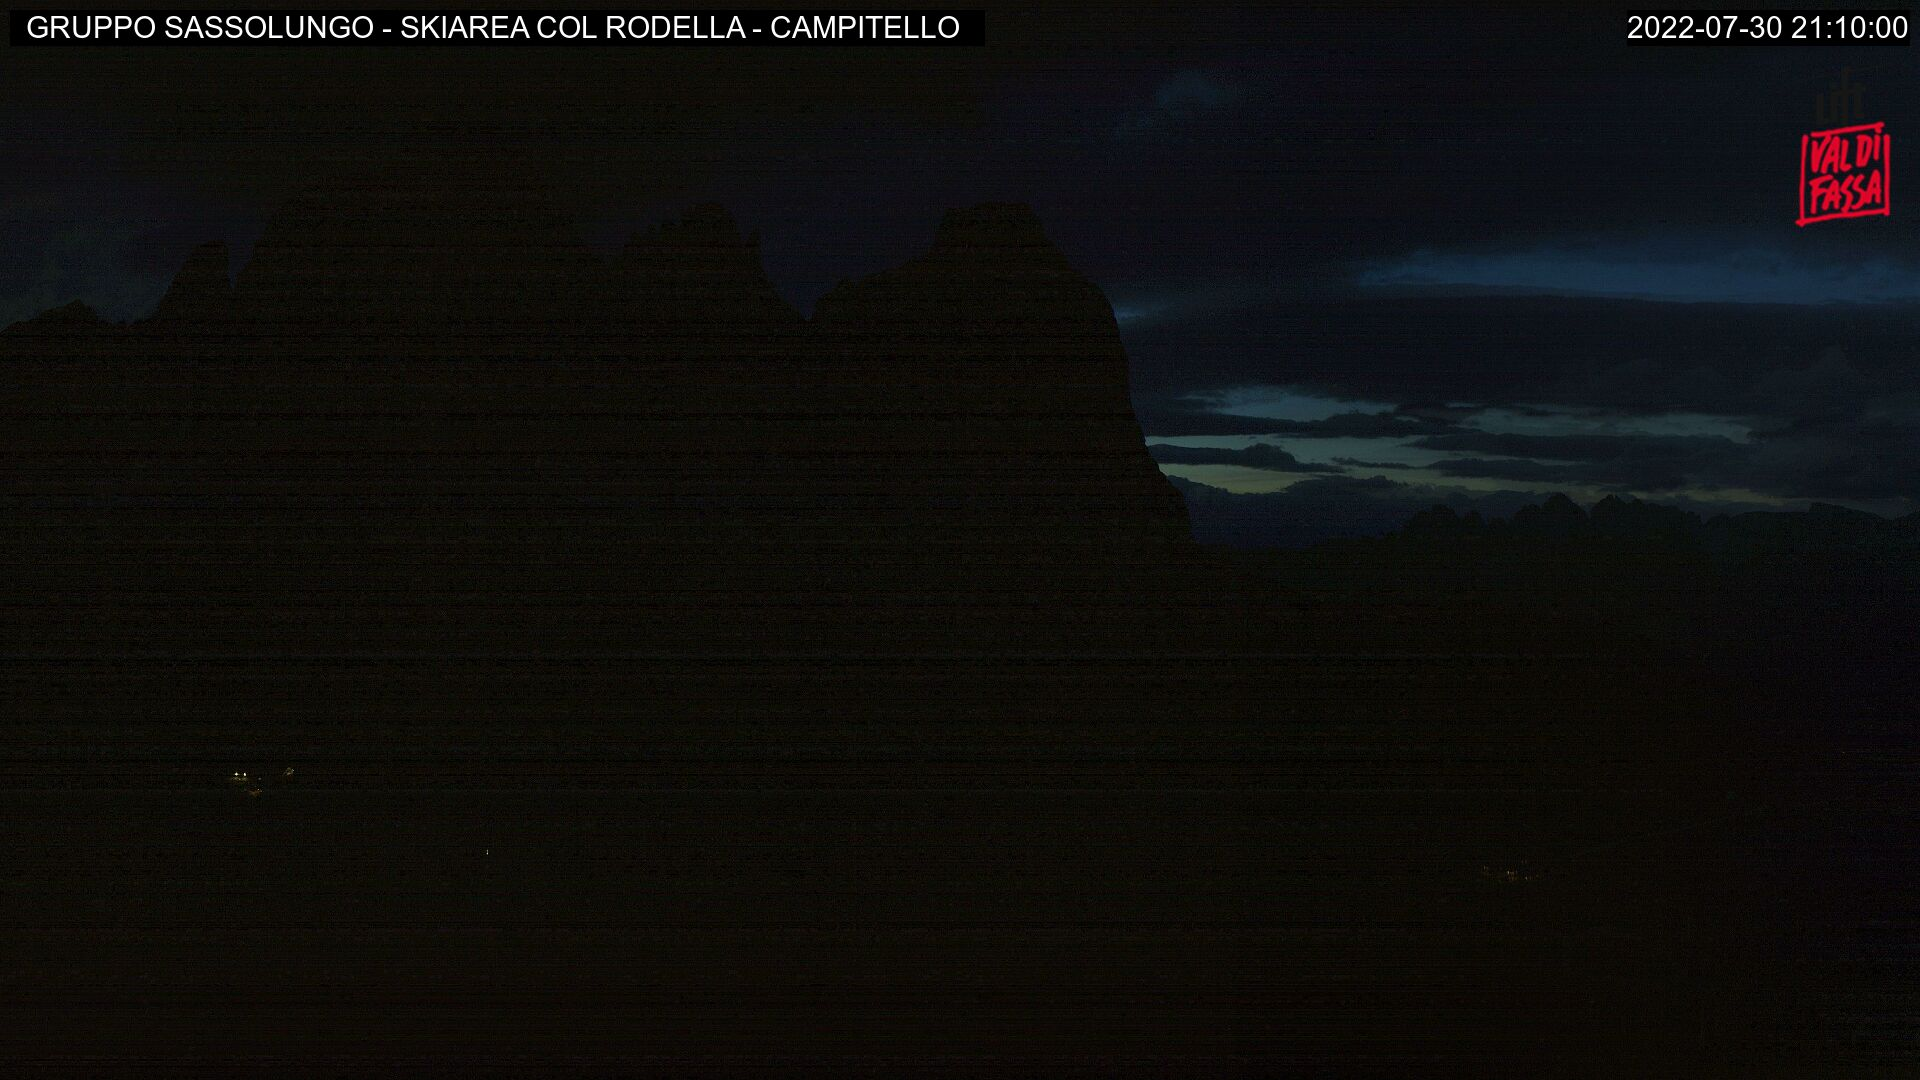 Interactive webcam Campitello - Col Rodella - Altitude: 2,440 metresArea: Col RodellaPanoramic viewpoint: interactive webcam. Panoramic view over the ski area Col Rodella, connected to Passo Sella, Val Gardena (Ski Tour Sellaronda) and Canazei-Belvedere.